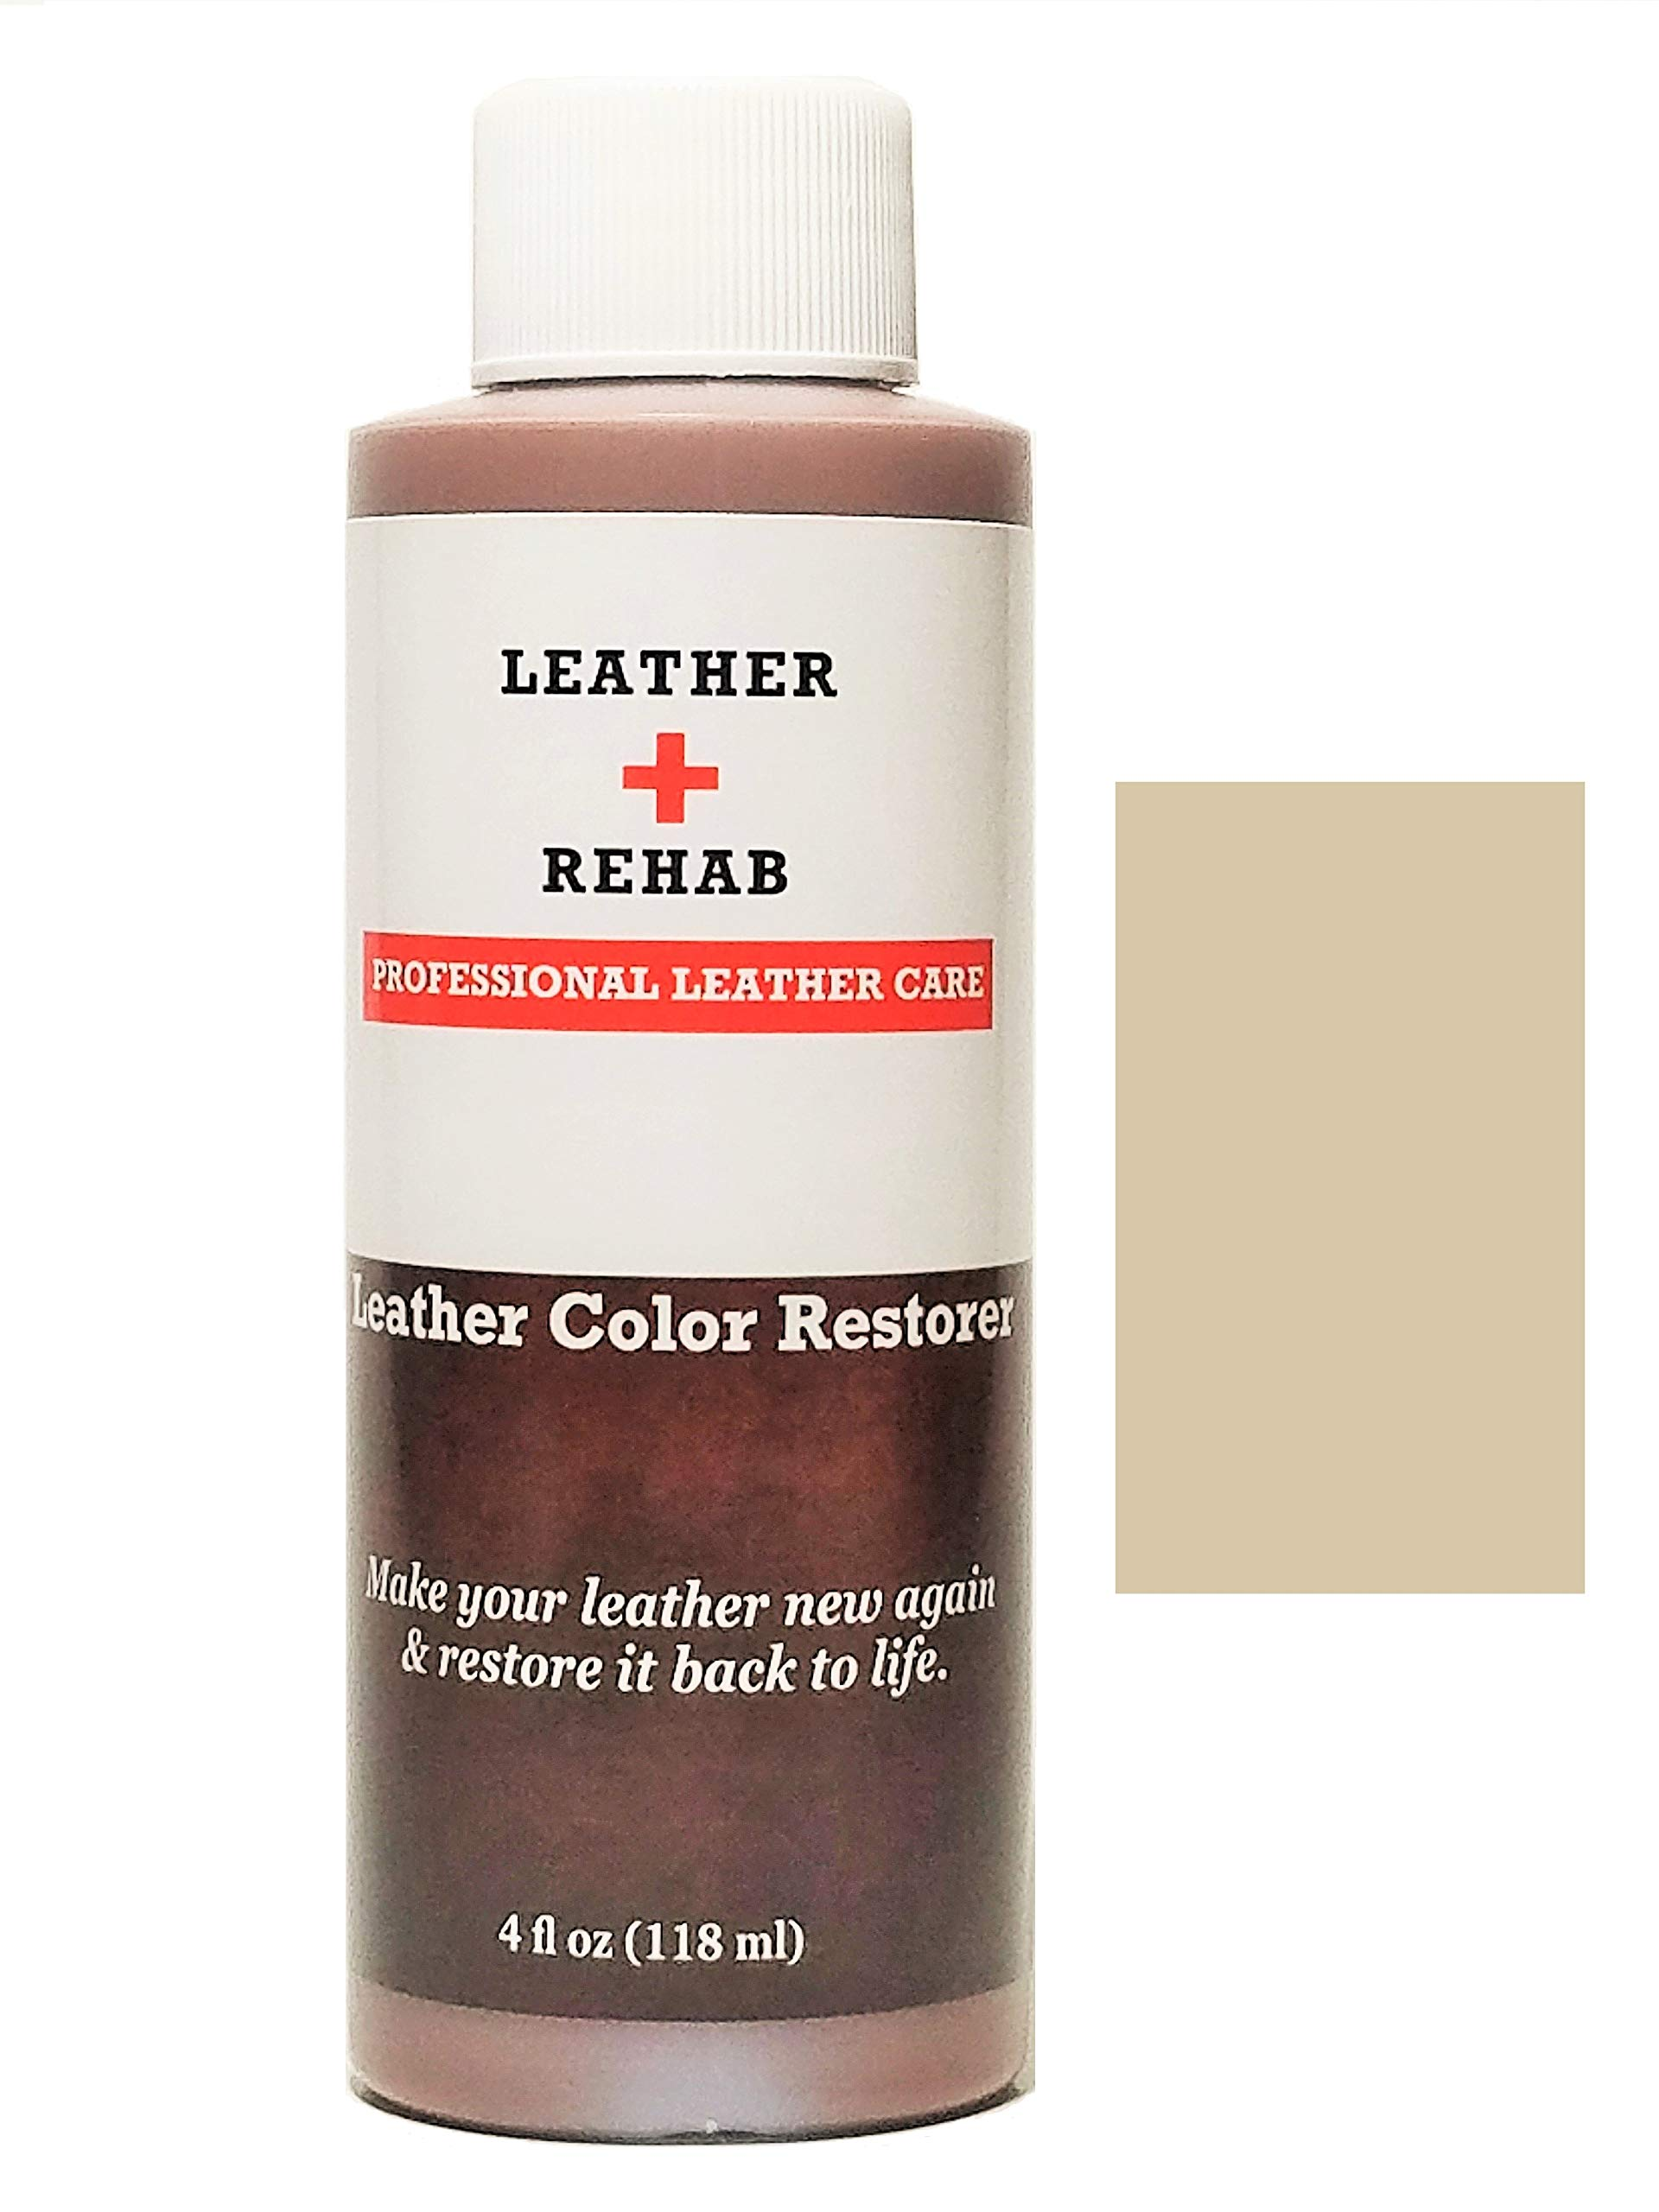 Leather Rehab Leather Color Restorer - Repair & Restore Faded, Worn and Scratched Leather & Vinyl Easily with No Kit - Furniture, Couch, Car Seat, Shoes, Jacket and Boots - 4 oz. Vellum Beige